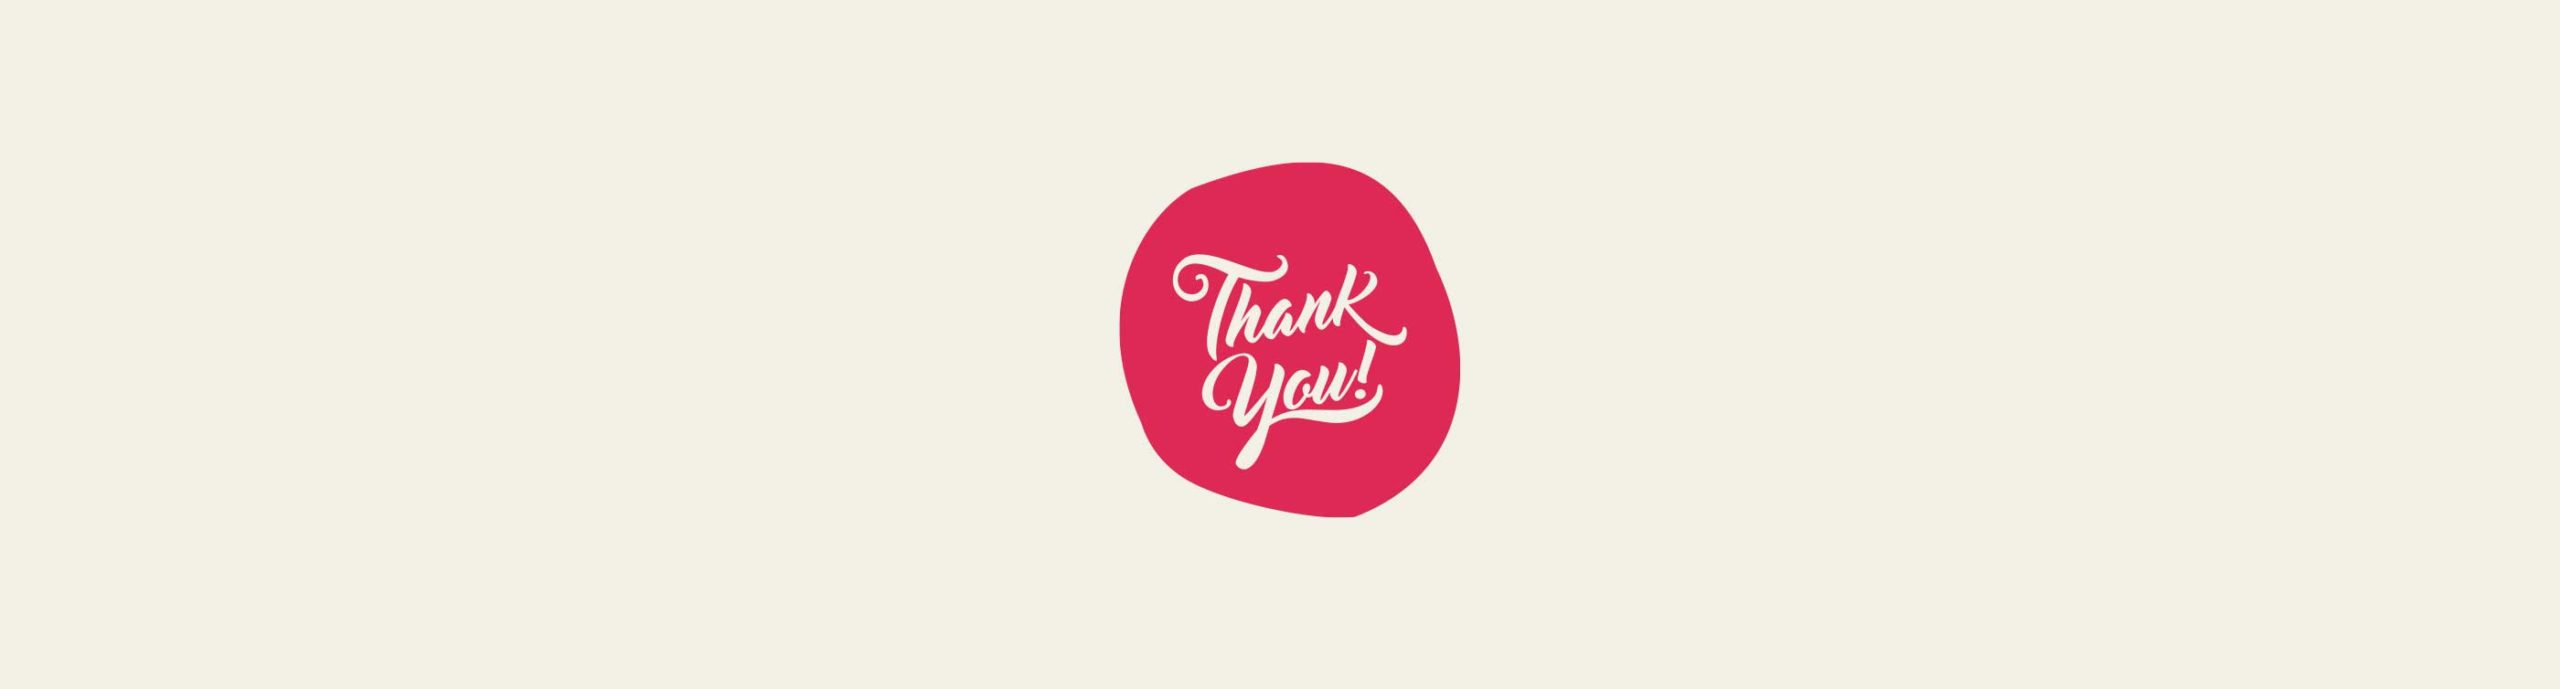 Thank you text on pink background